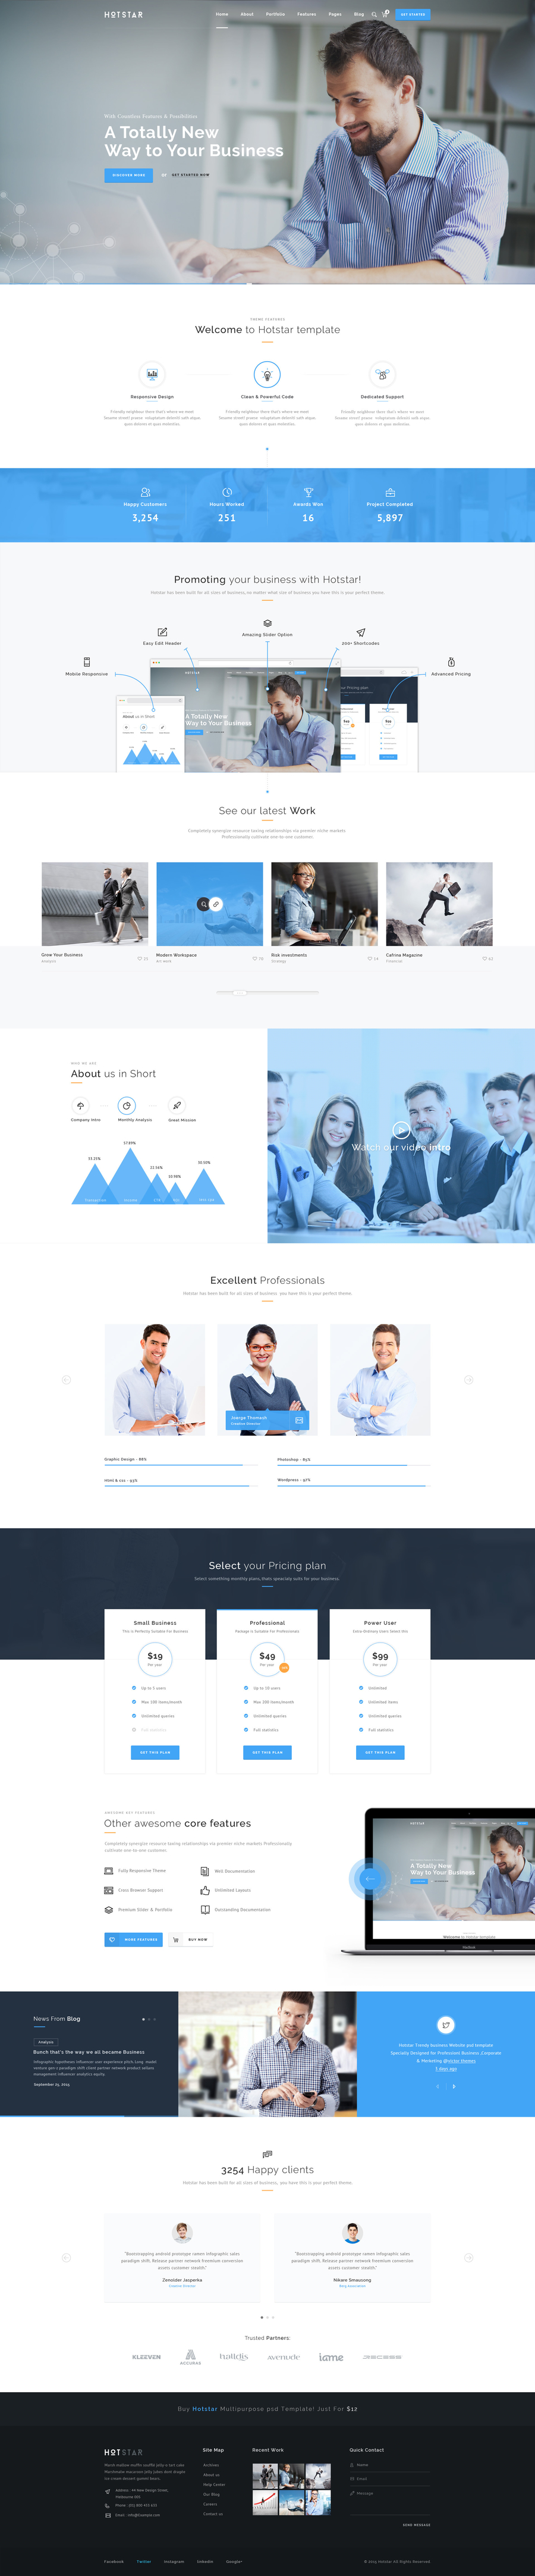 hotstar-multipurpose-psd-template-2